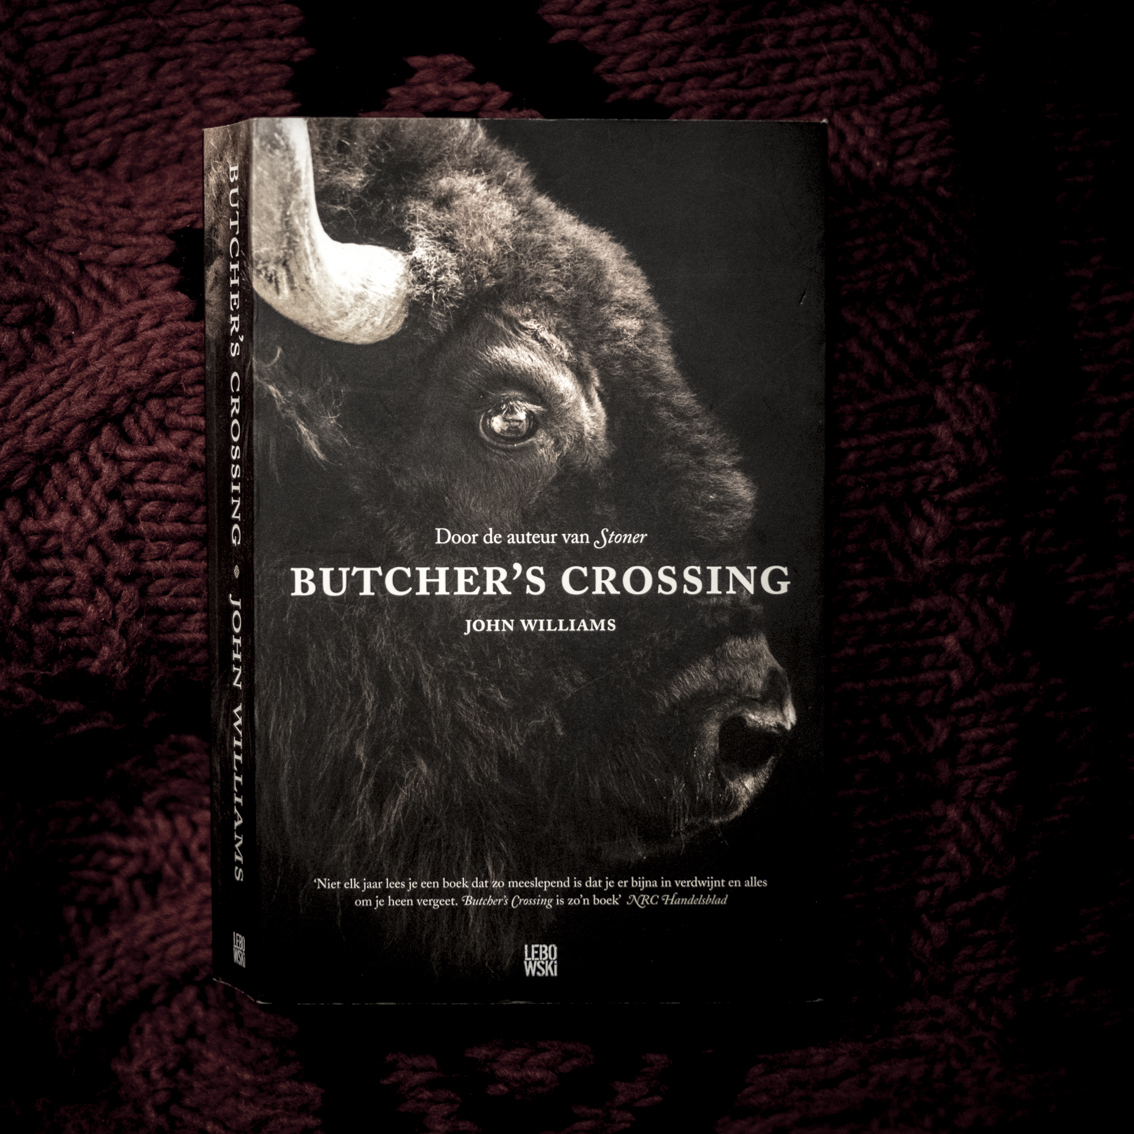 John Williams, Butcher's Crossing.   Bison hunters get stuck in the snow, in the cold misery. This western novel is not a happy story with a happy end, but what a story! The novel is hard and ruthless, as a reader you sink with your boots away in the mud. If you want to know how it feels to freeze on a horse, run to the bookstore. The book was published in 1960 but recently reissued. The author John Williams died in 1994.